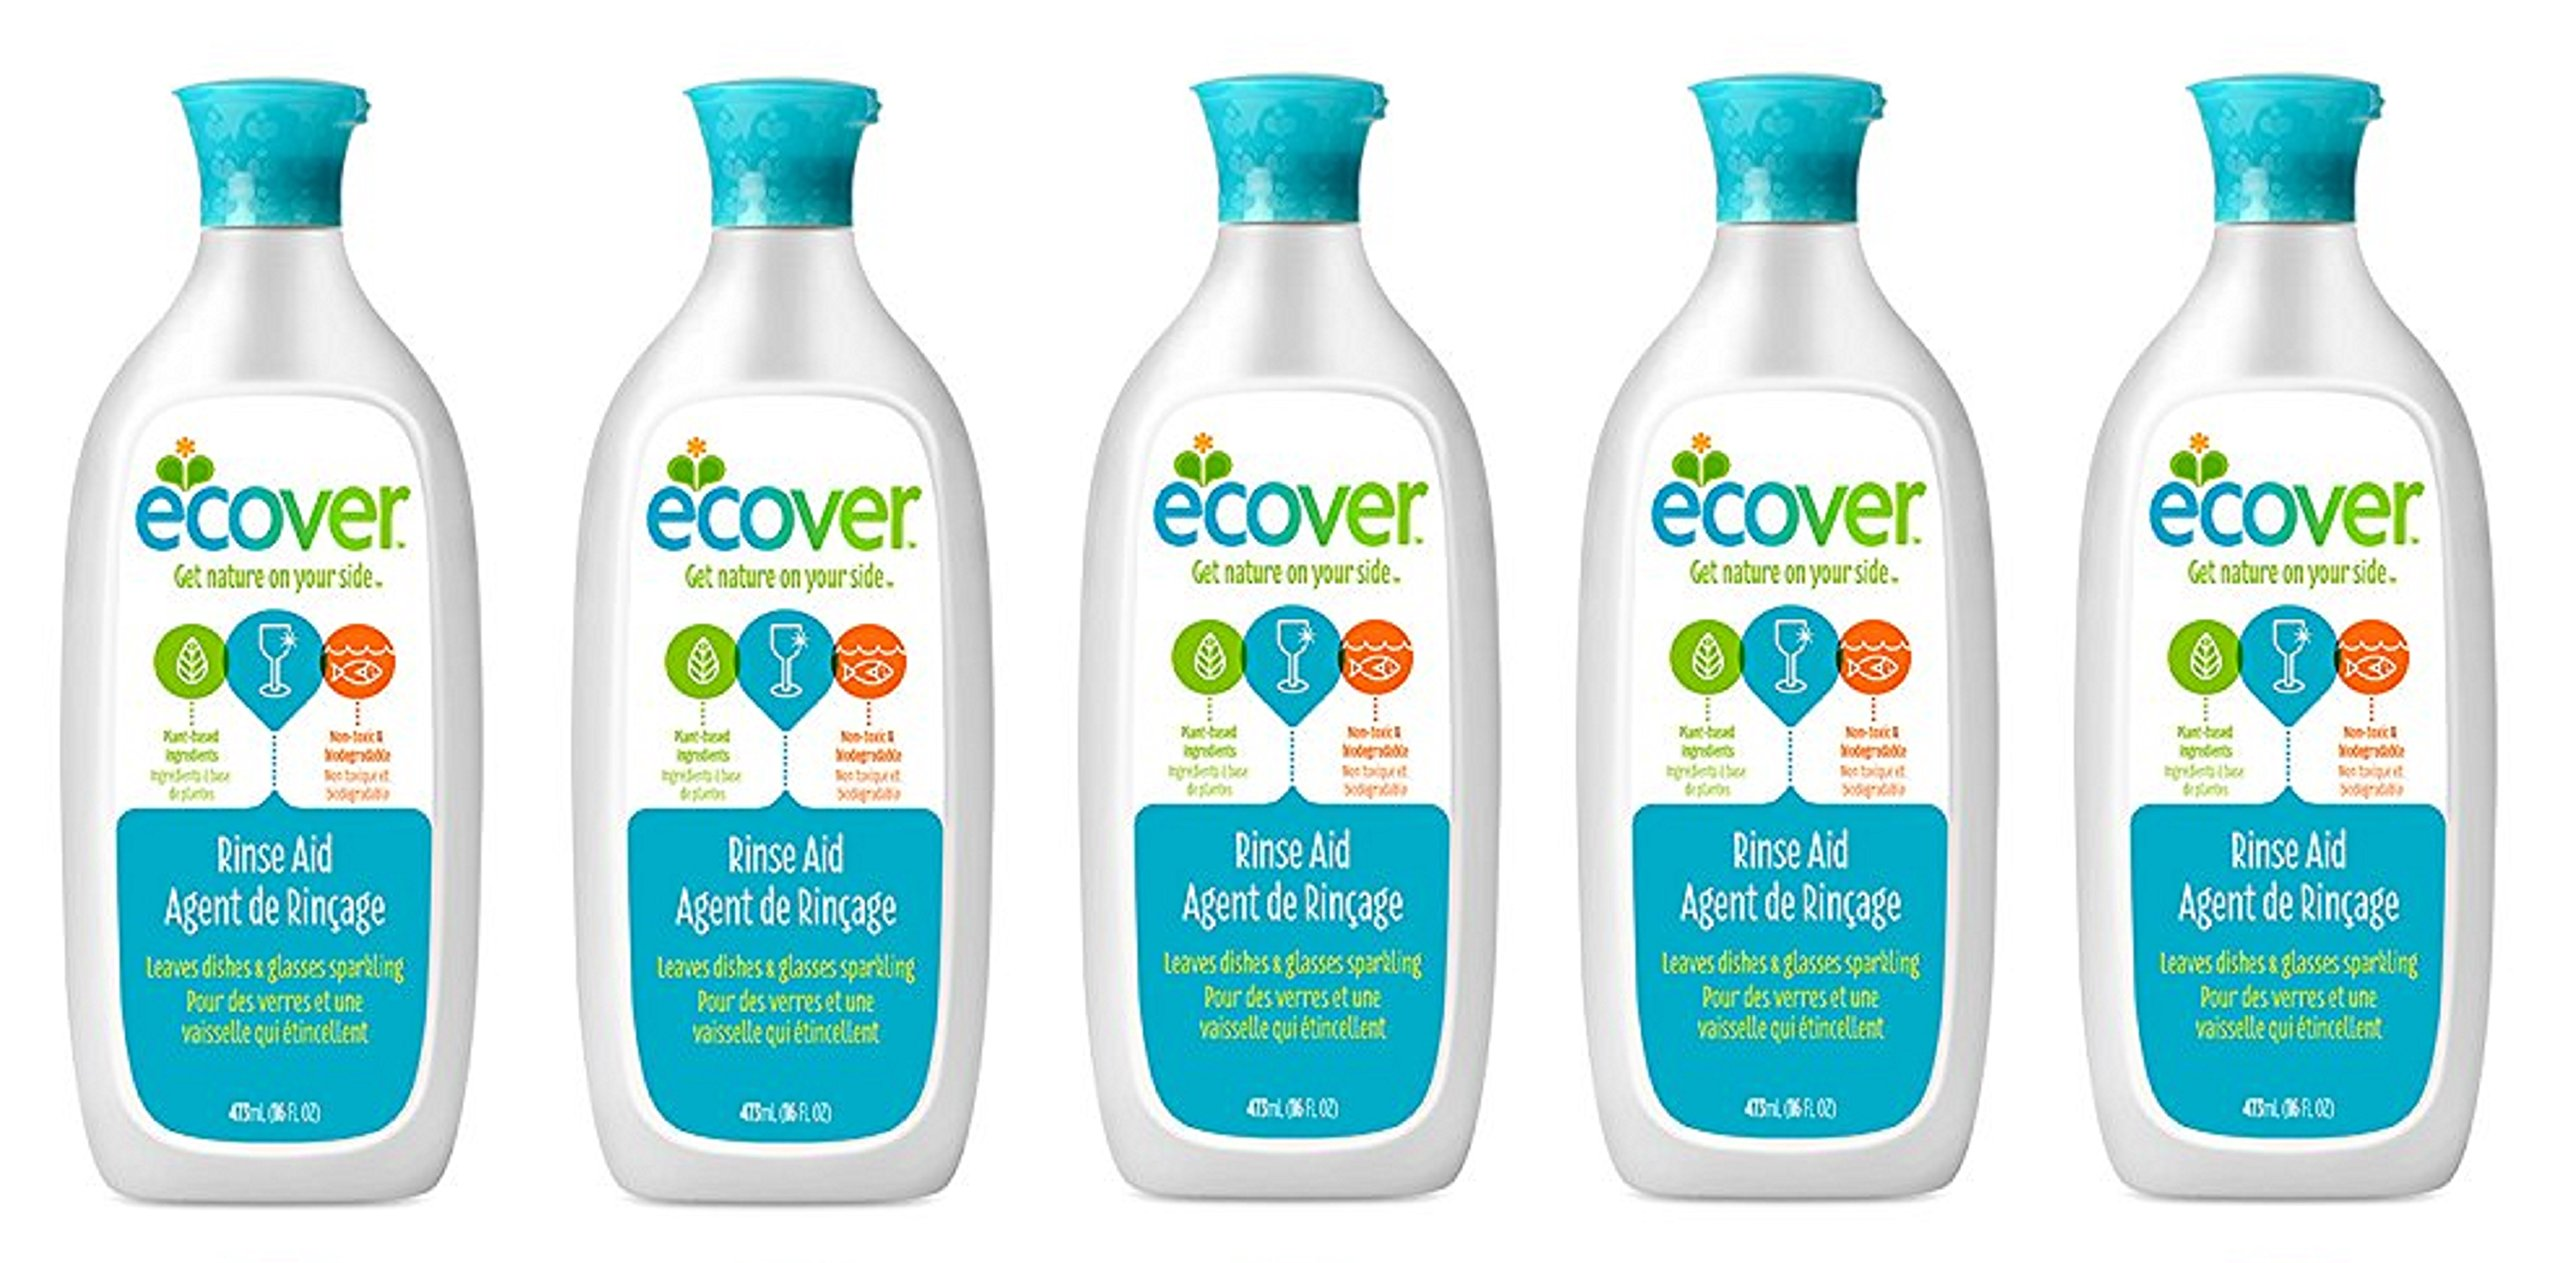 Ecover Naturally Derived Rinse wWjubb Aid for Dishwashers, 16 Ounce (Pack of 5)